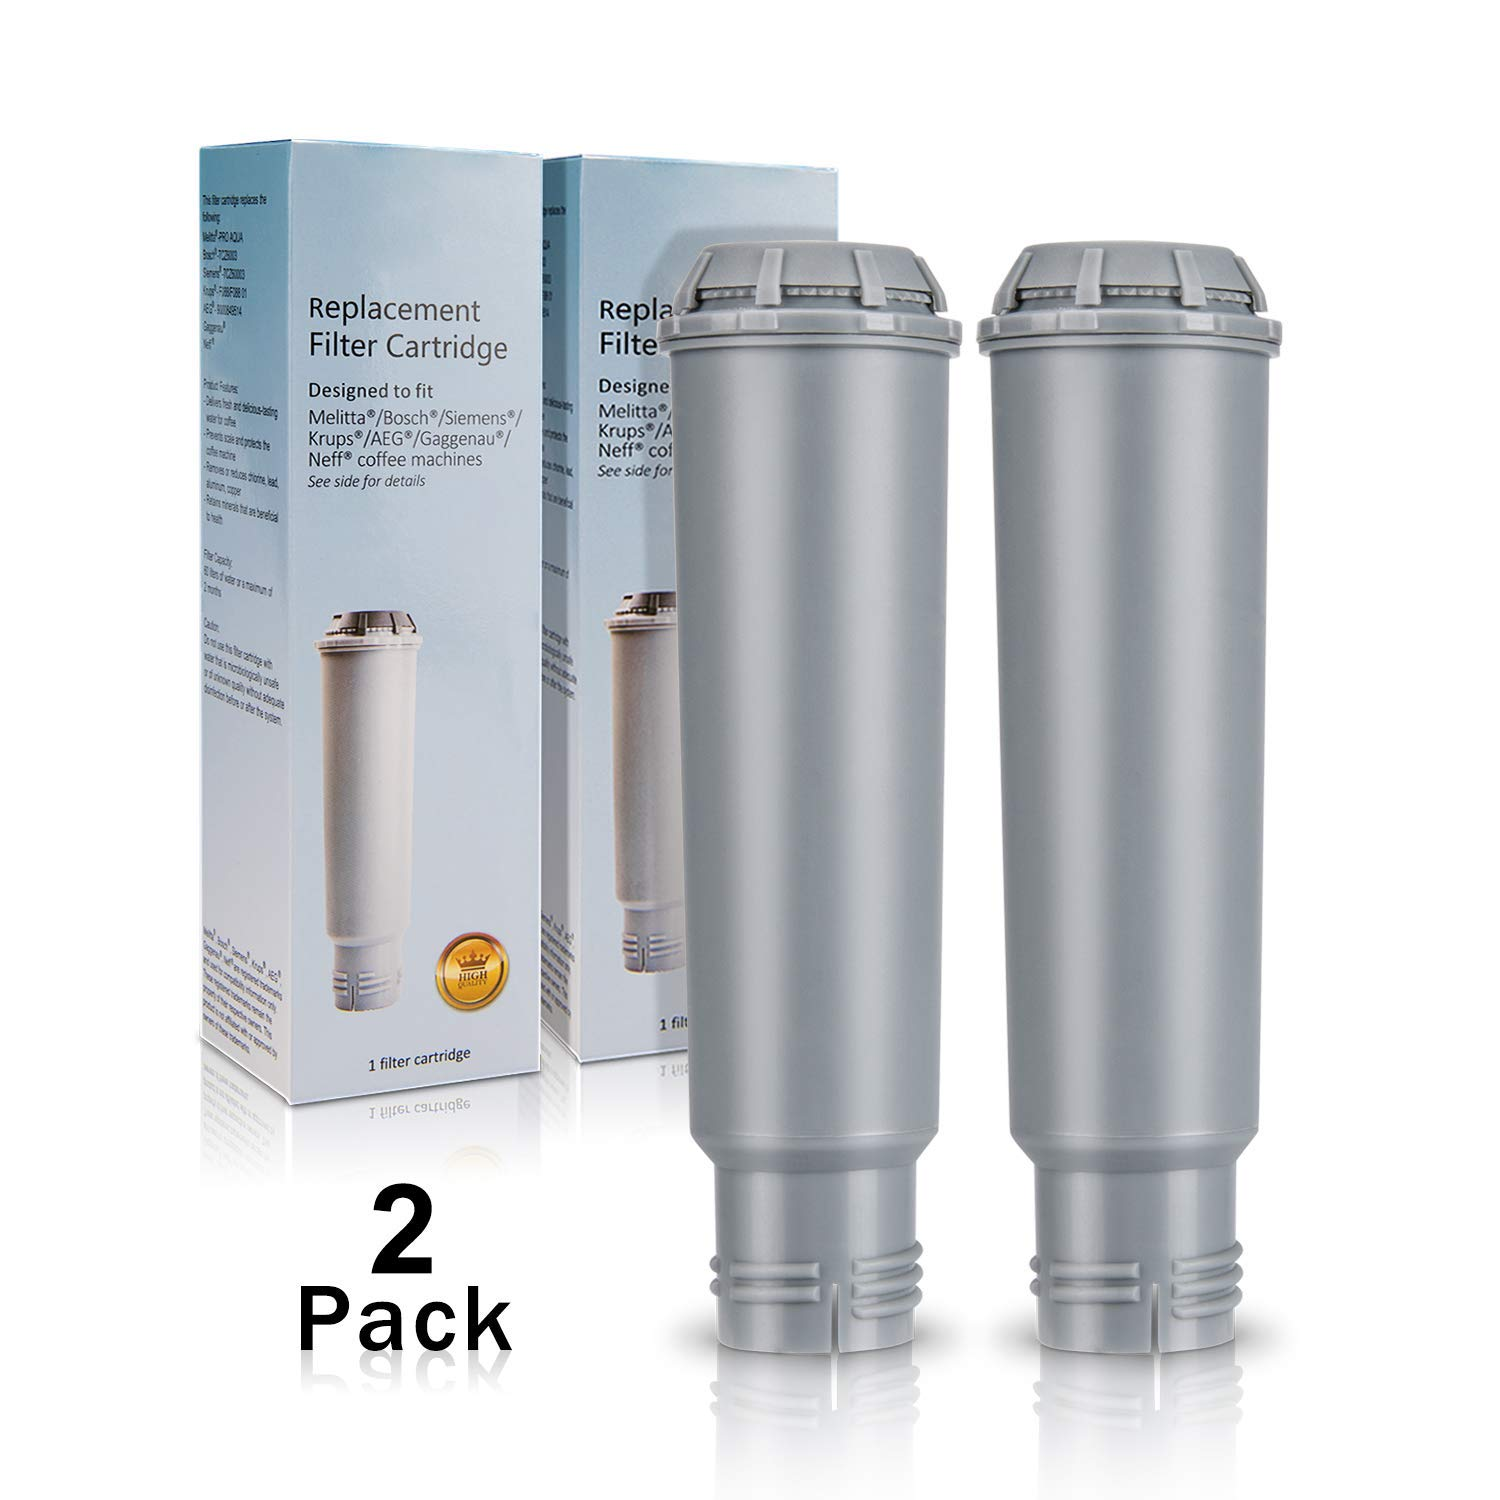 Coffee Machine Filter for Krups Claris F088 Filter, Homegoo Water Filter Compatible with Melitta, Nivona NIRF-700, Bosch, AEG, Siemens Coffee Machines (Pack of 2)